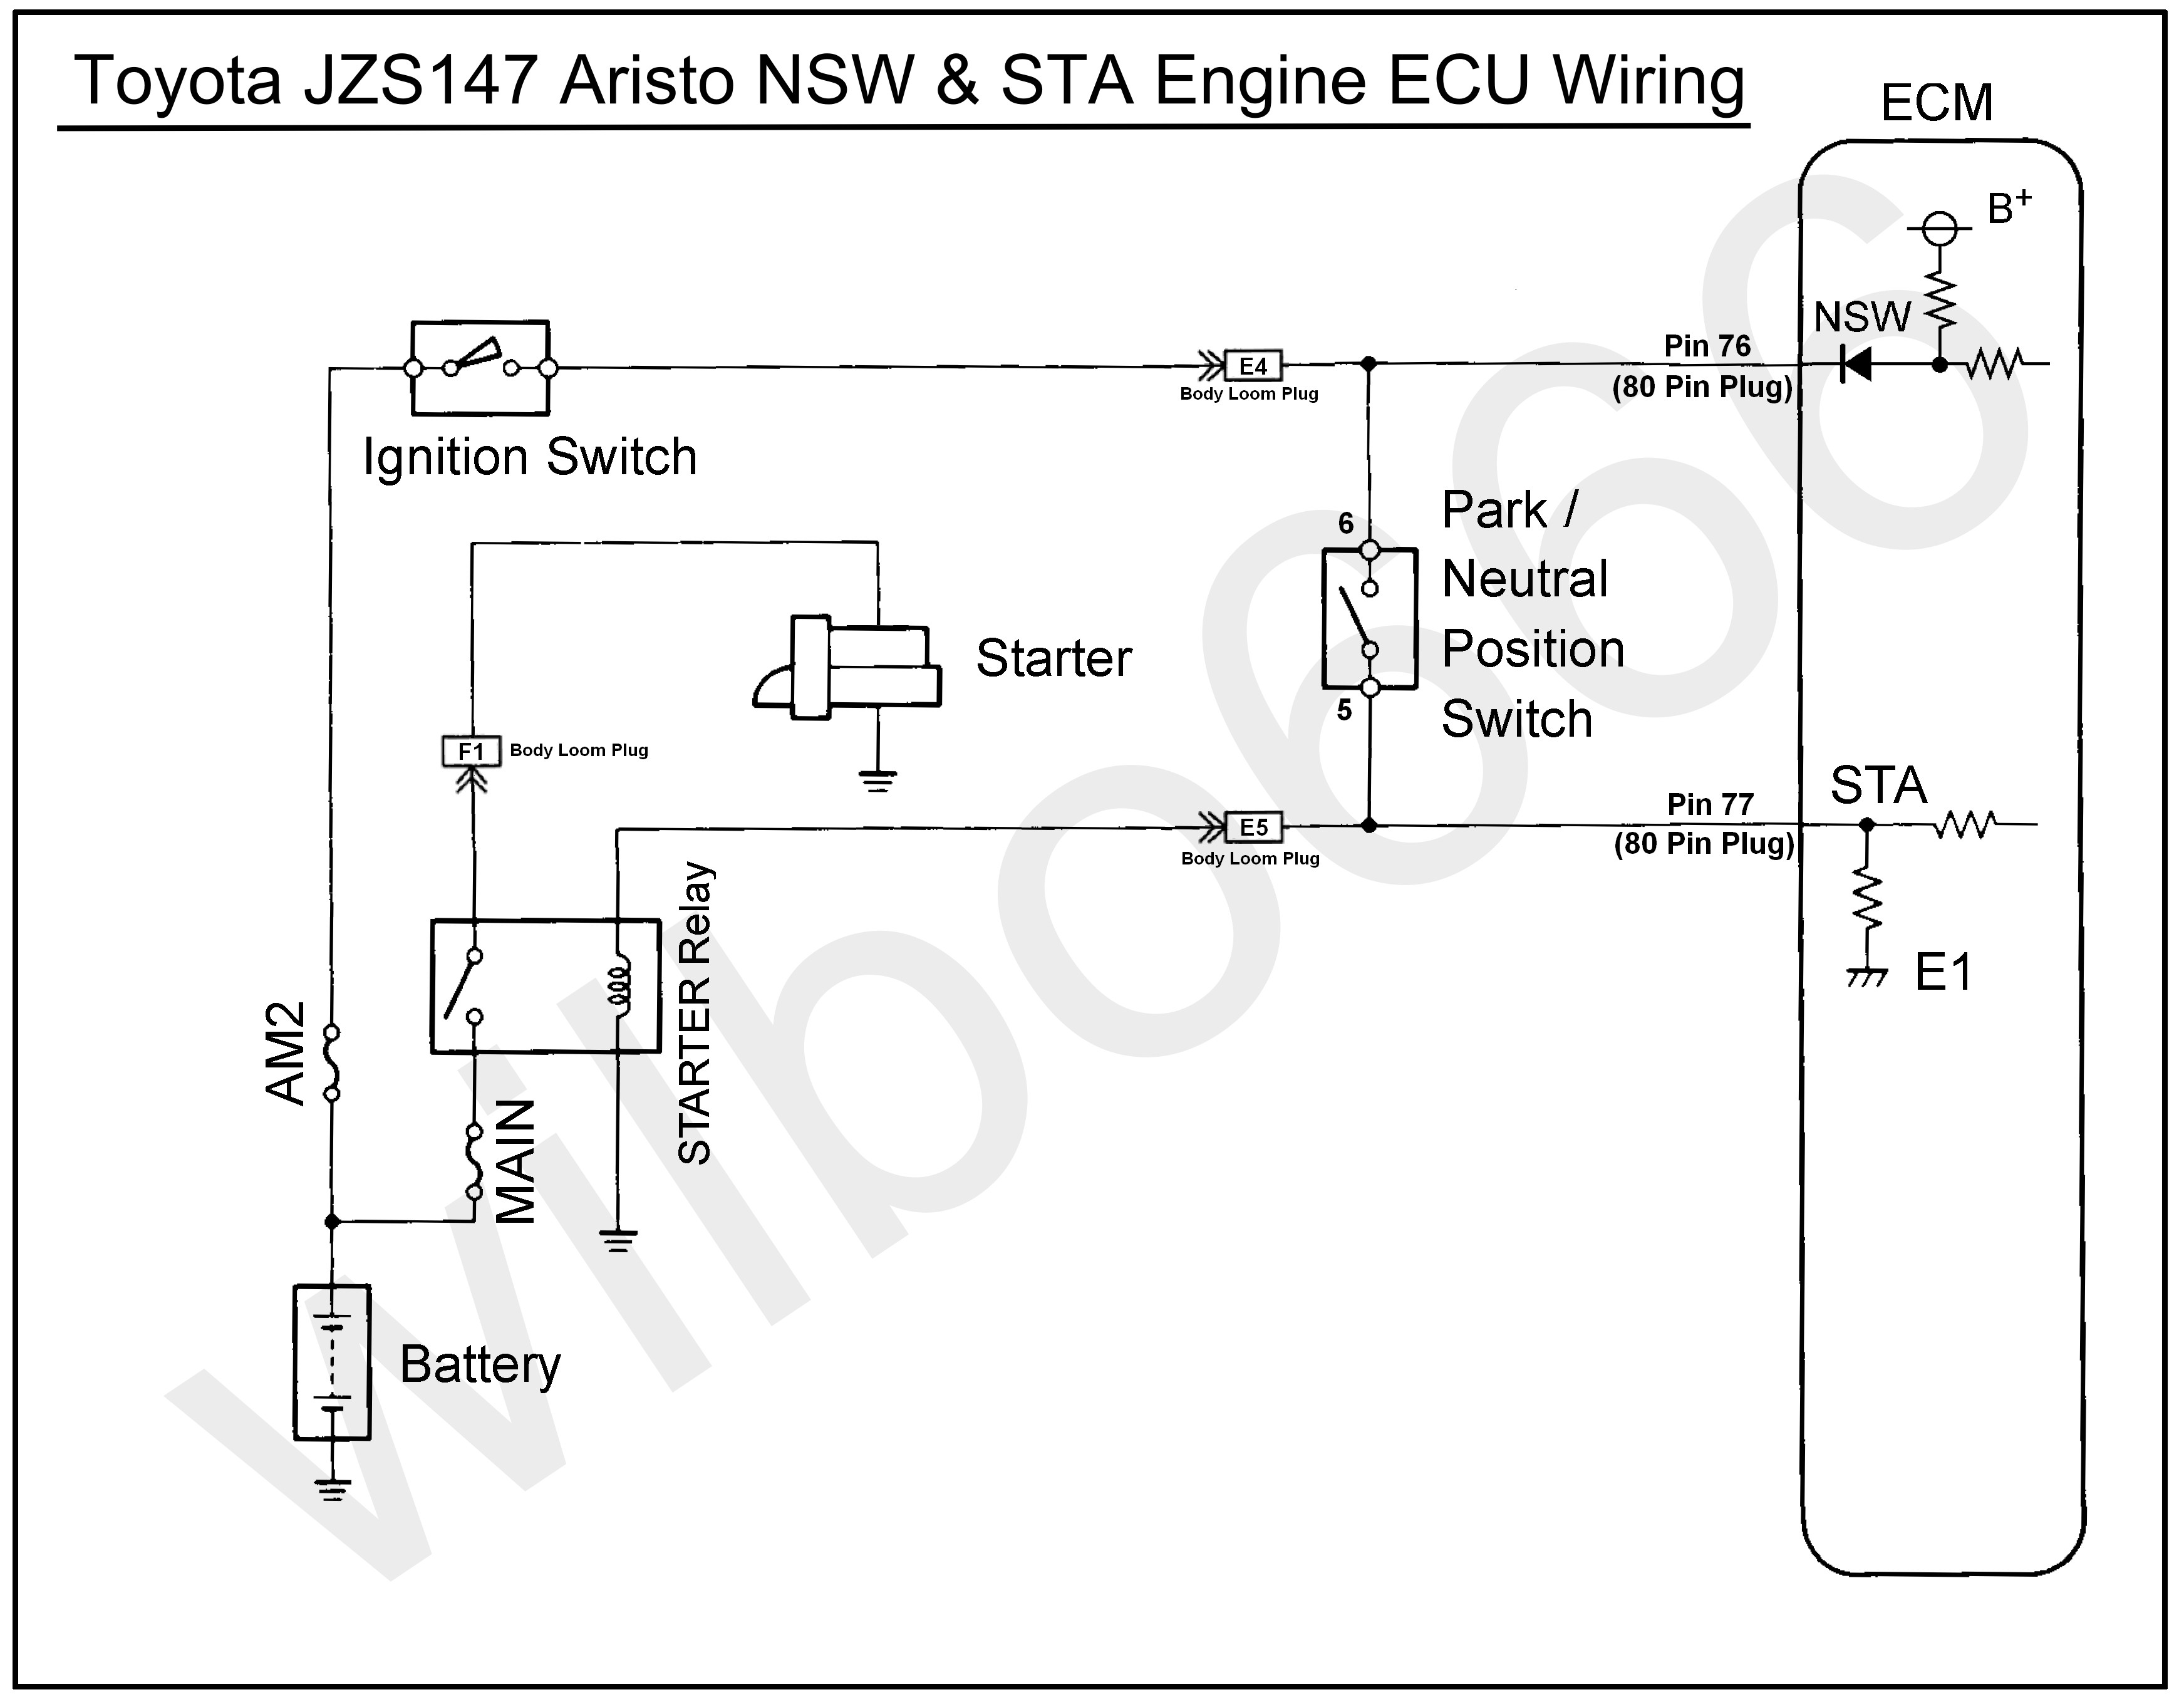 Wiring Diagram Switch S1 Wilbo666 2jz Gte Jzs147 Aristo Engine Wiring Of Wiring Diagram Switch S1